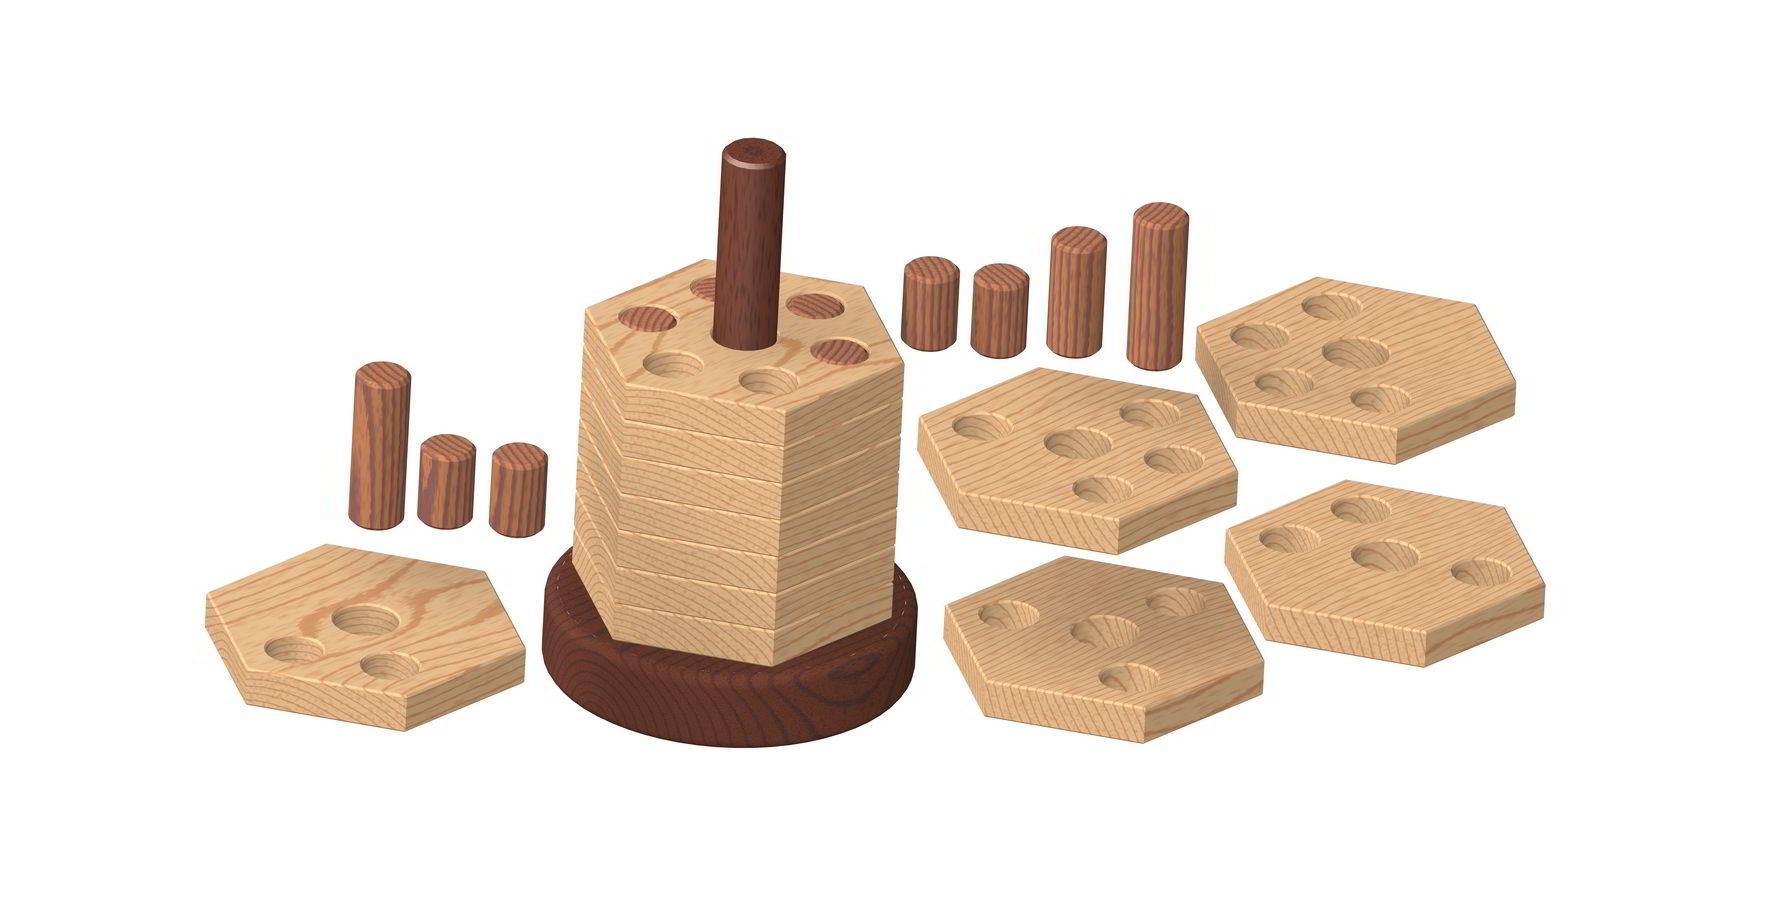 3d Wooden Puzzles Plans Wooden Stacker Puzzle Plan 2